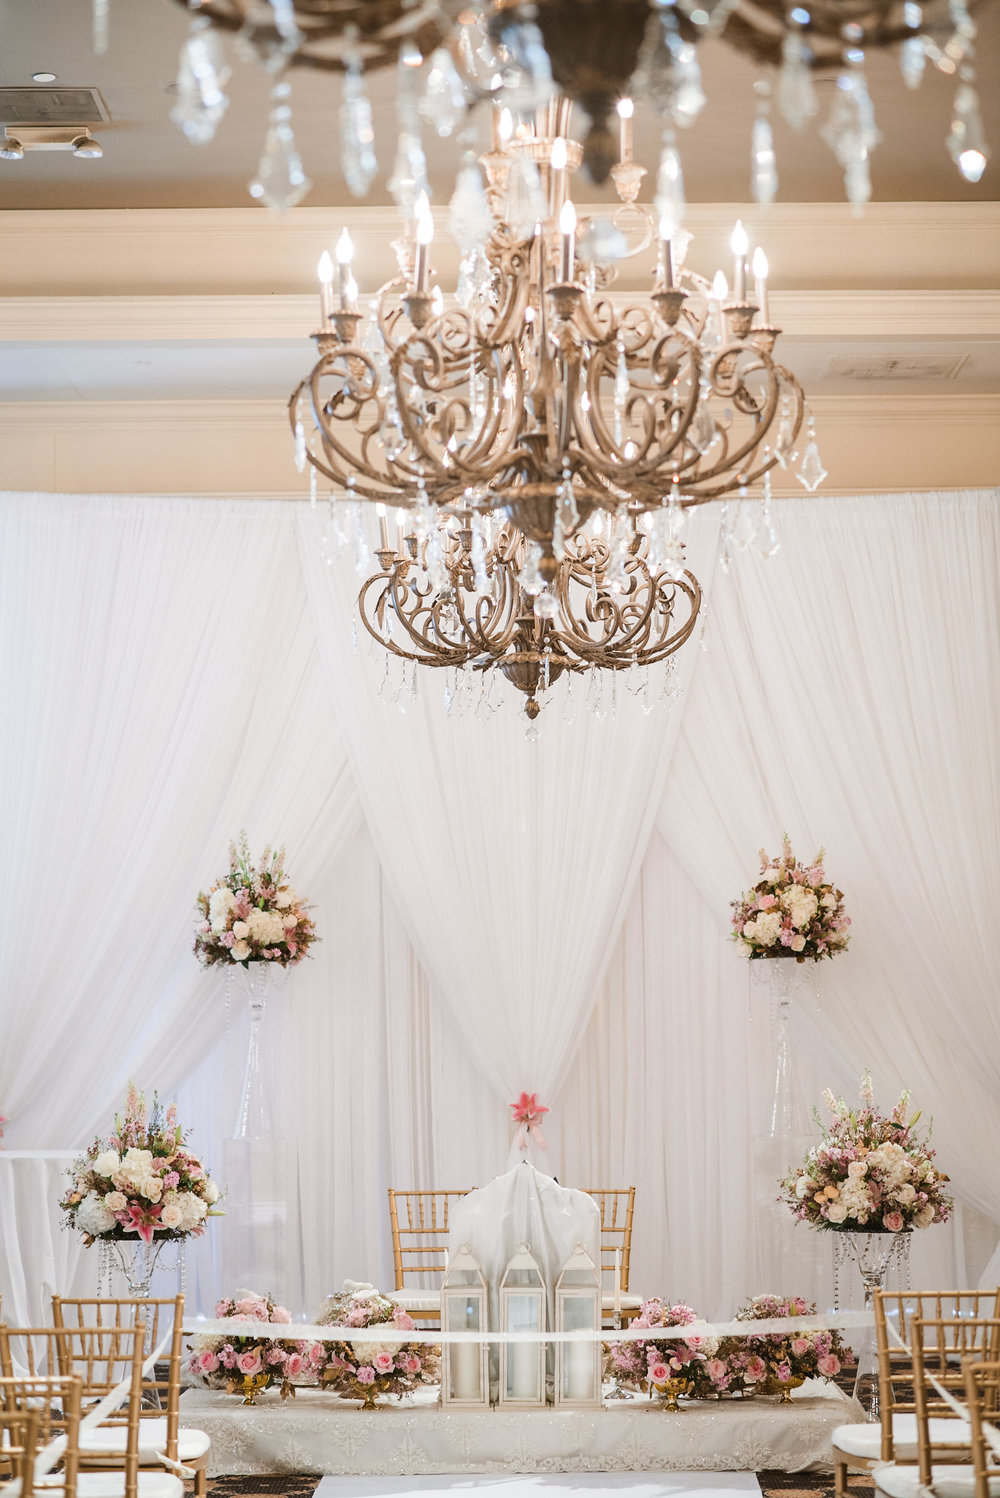 Chandelier in ceremony space